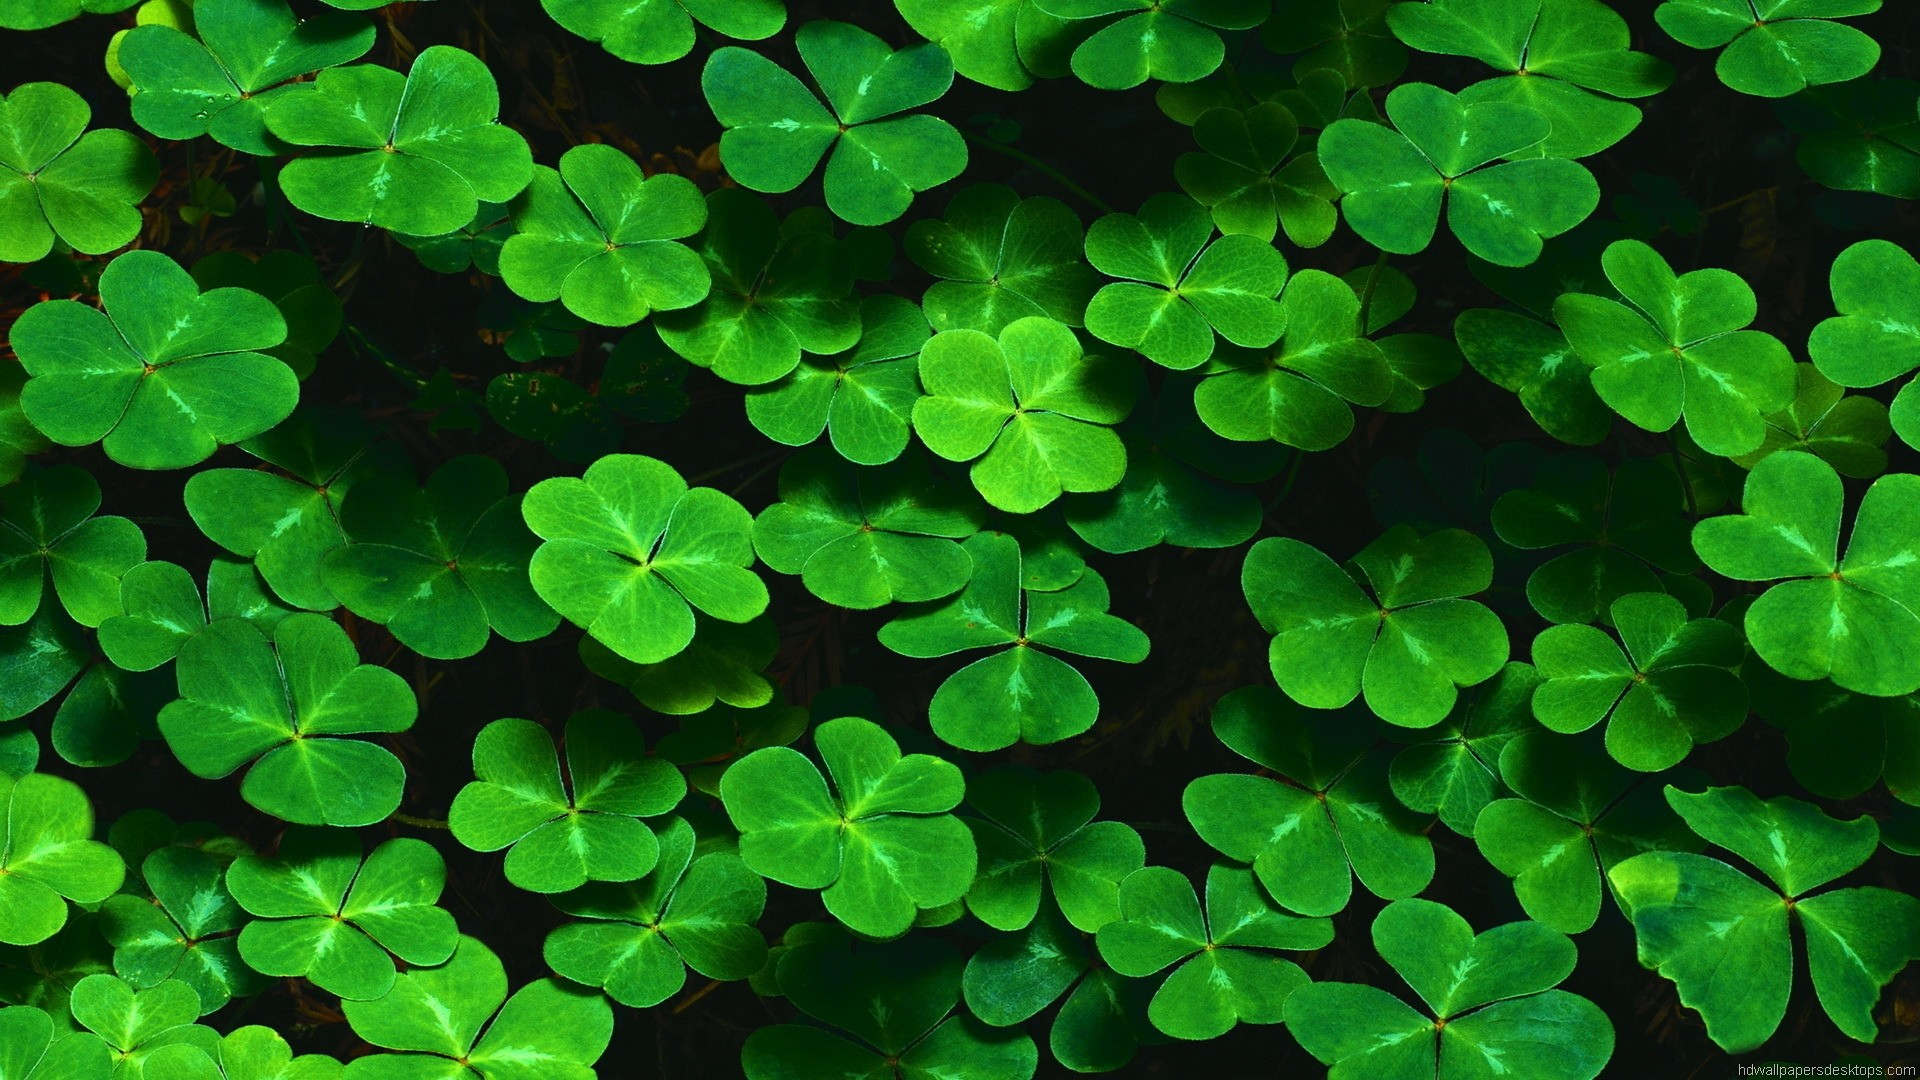 1920x1080 Tags: holiday, st patricks day